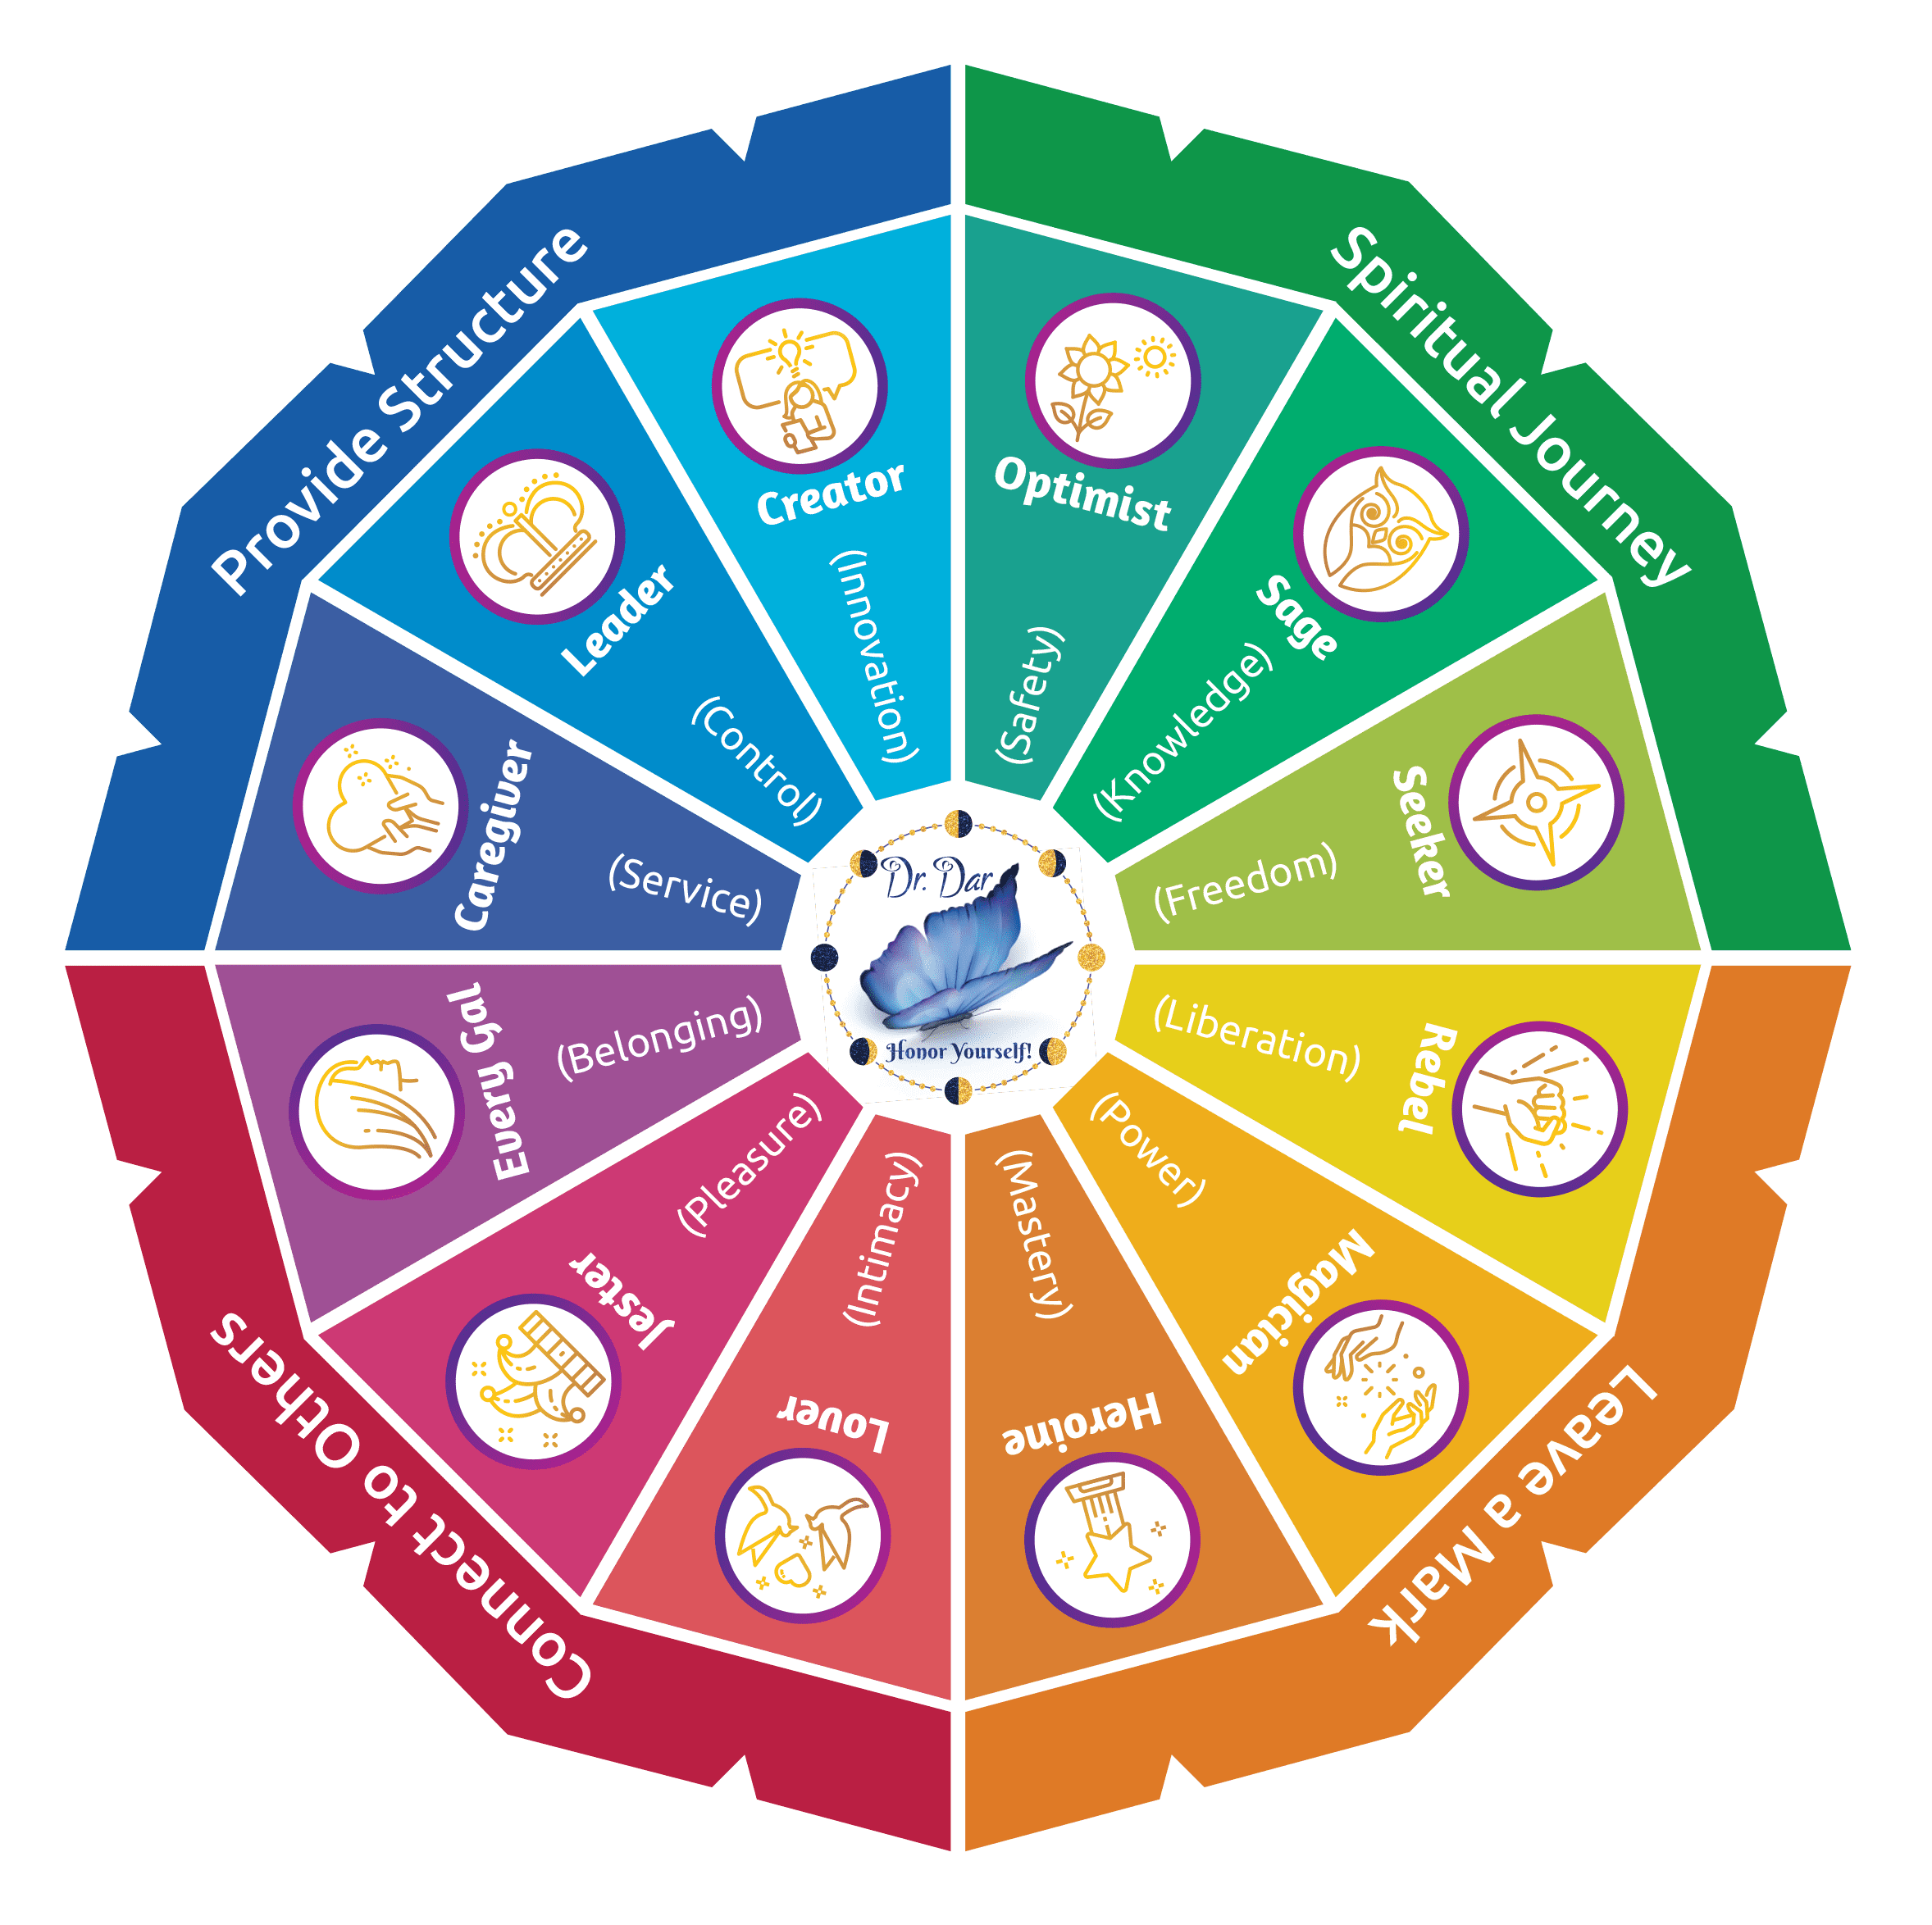 Nurture Your Nature Archetype Wheel - Dr. Dar Hawks Brand